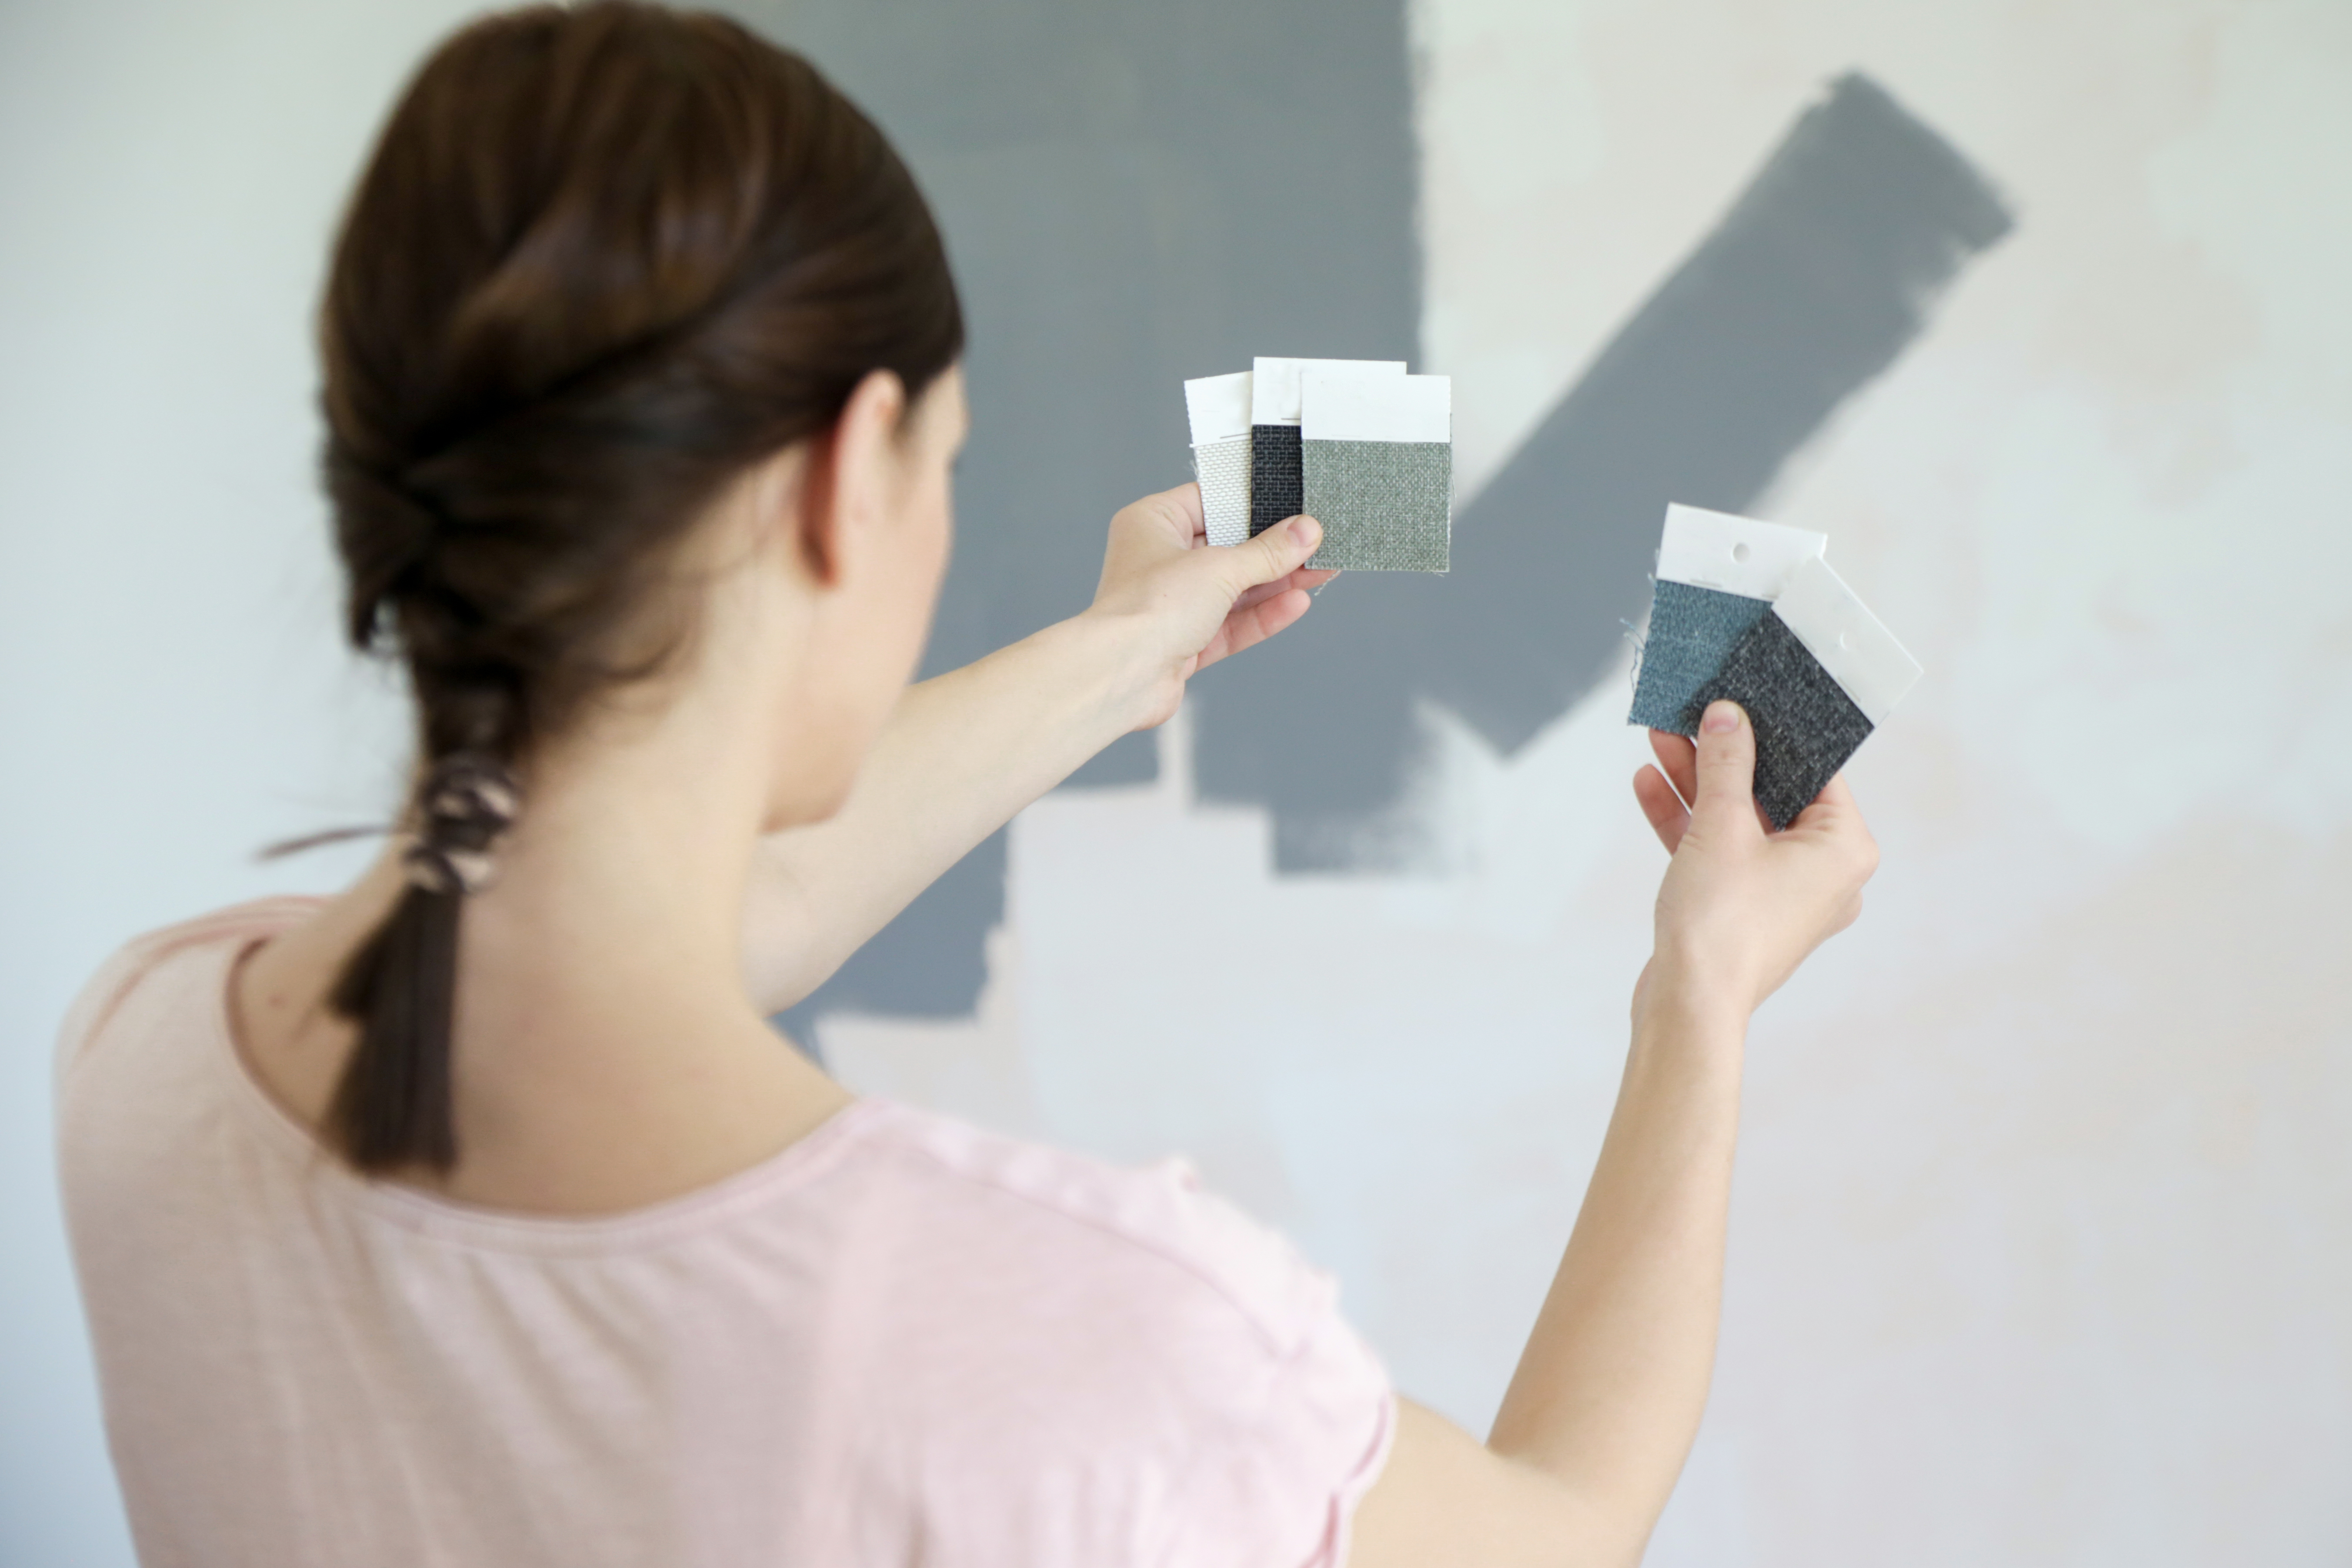 Young women choosing a perfect shade of grey for walls in her new home